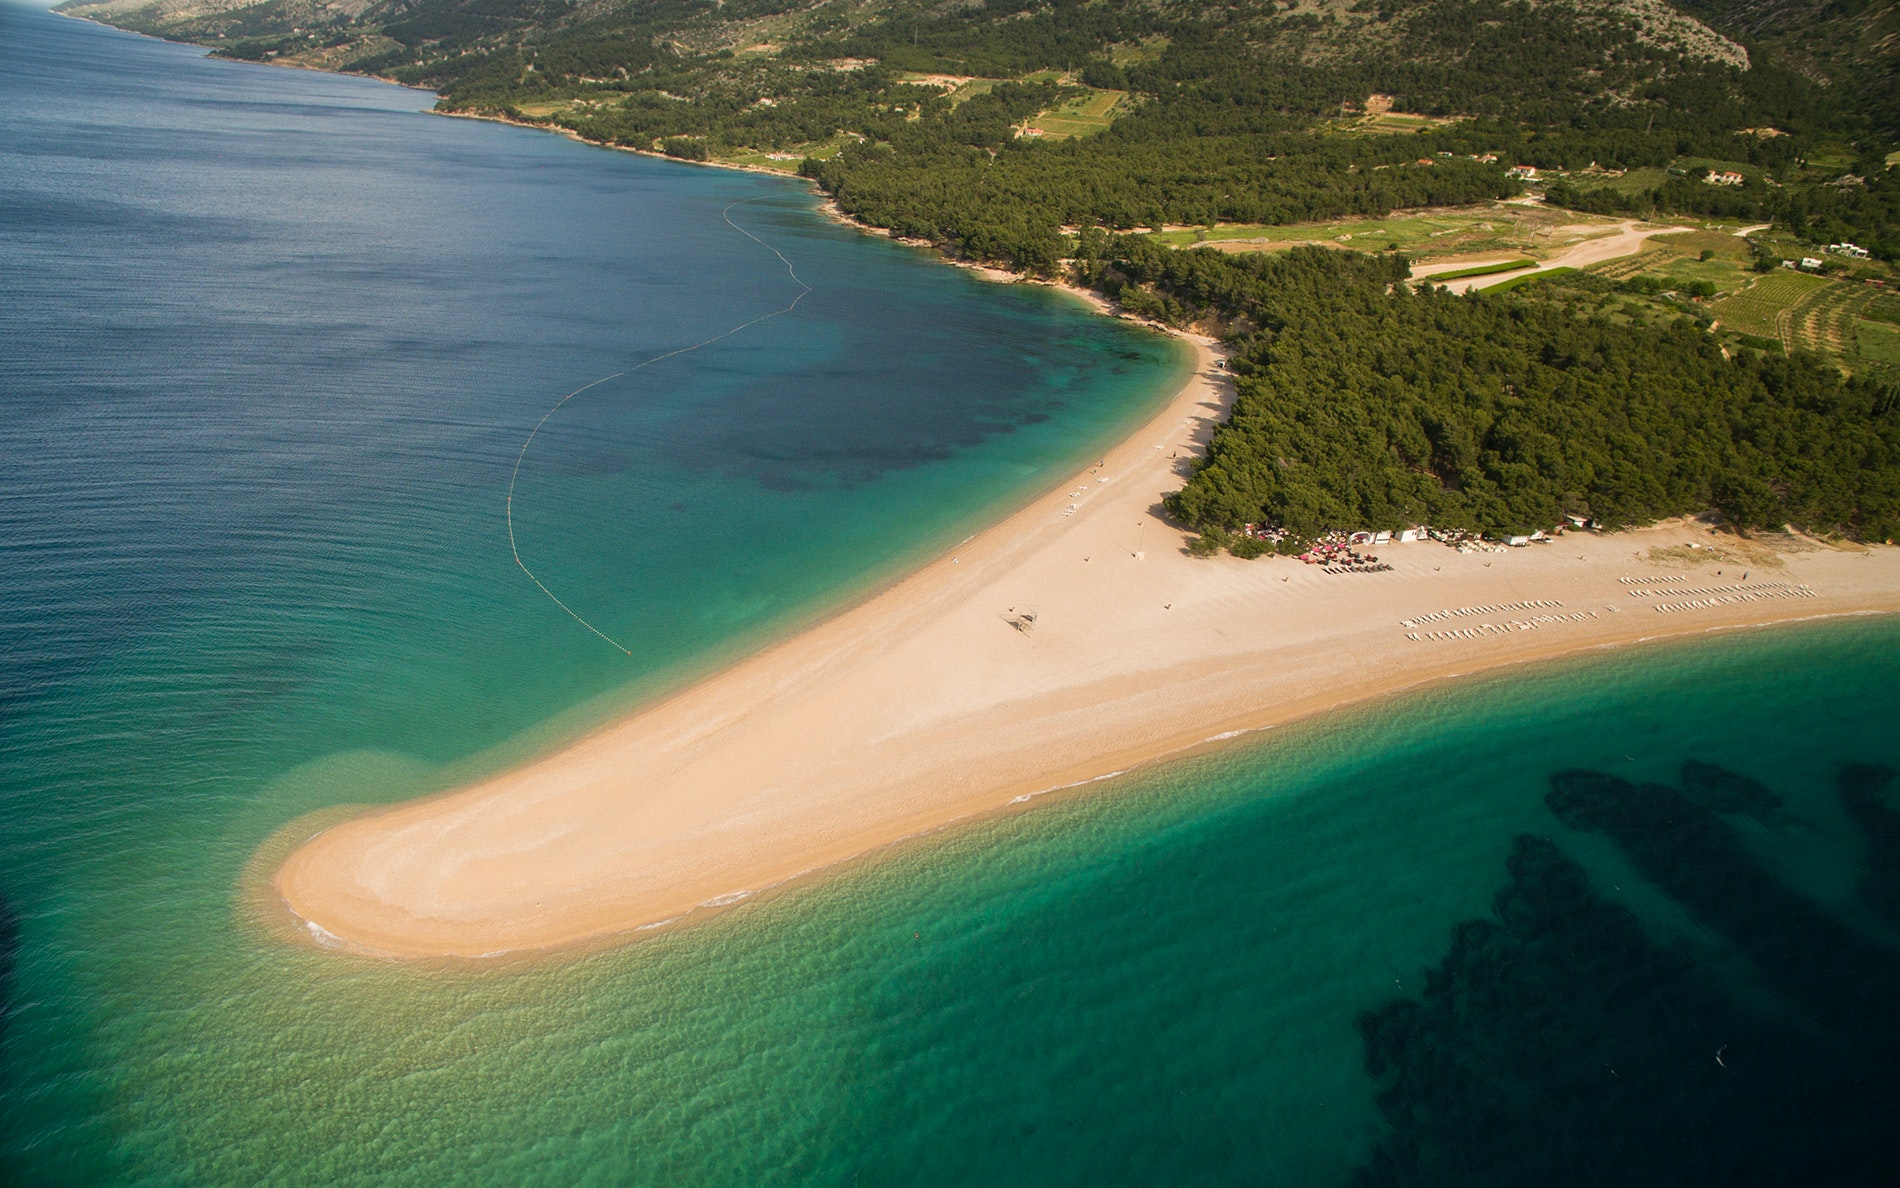 Zlatni Rat is known for its tongue-like shape, which shifts depending on the currents of the Adriatic.